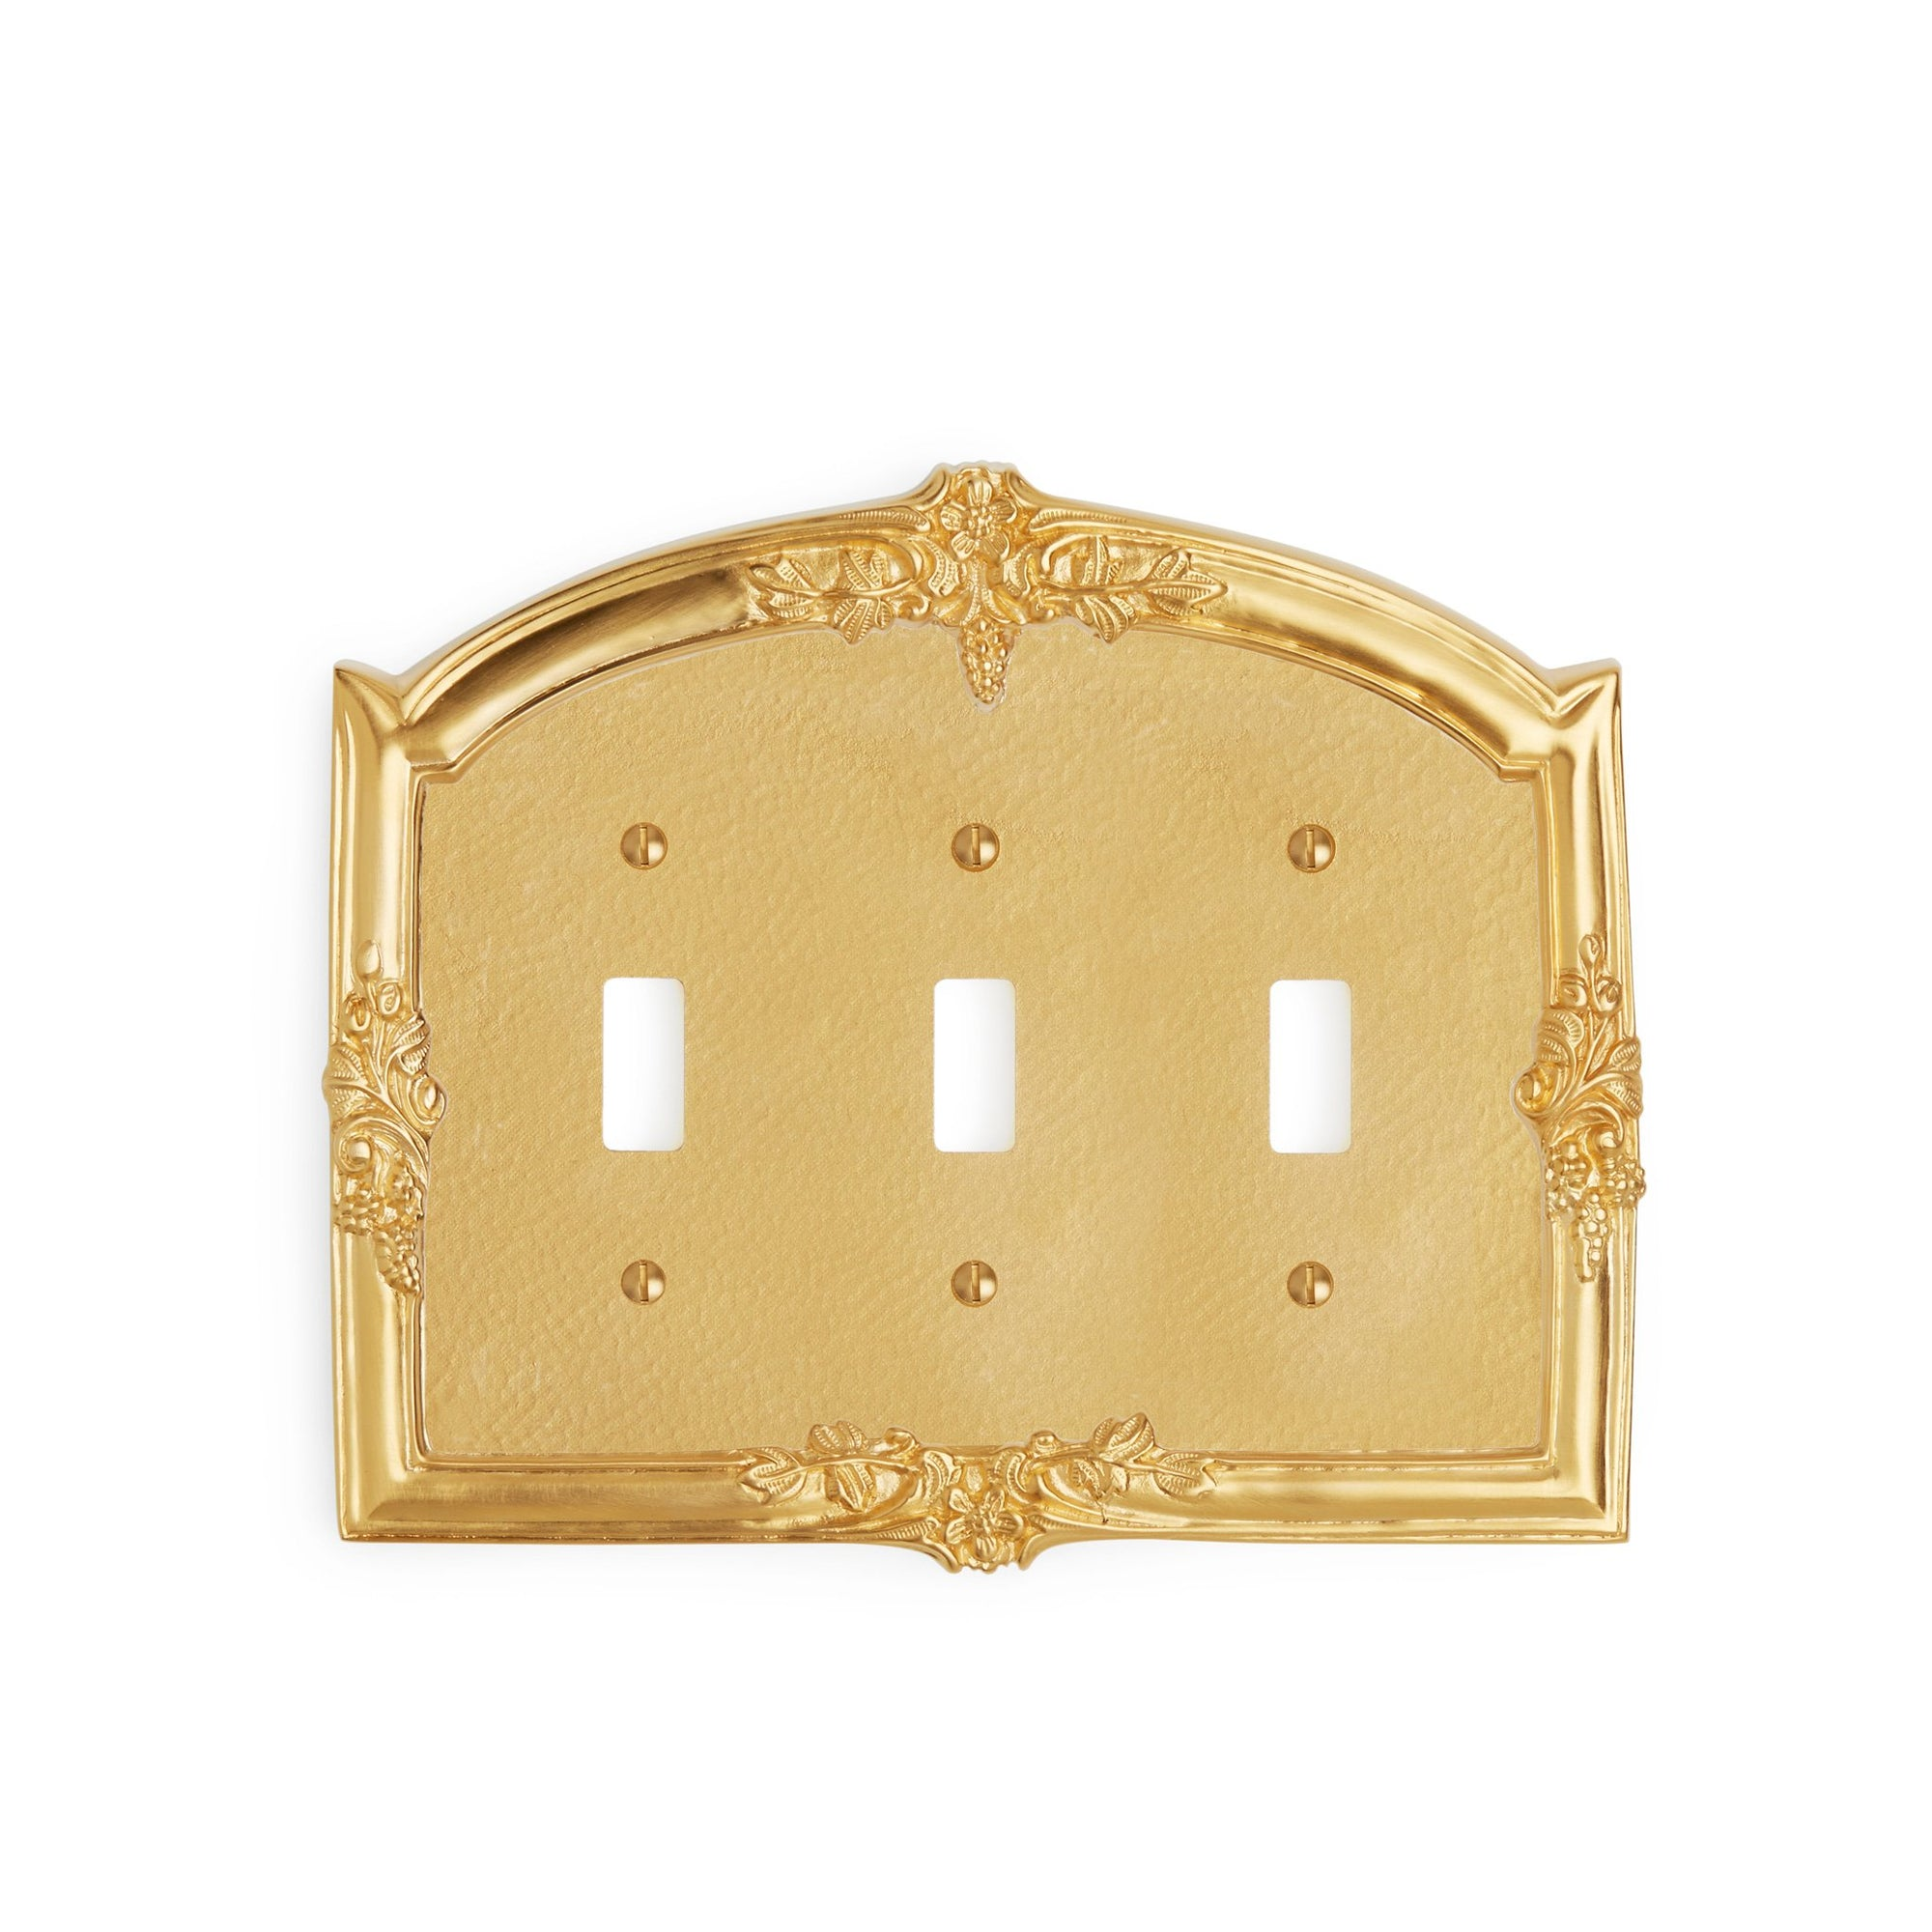 0458T-SWT-GP Sherle Wagner International Grapes Triple Switch Plate in Gold Plate metal finish